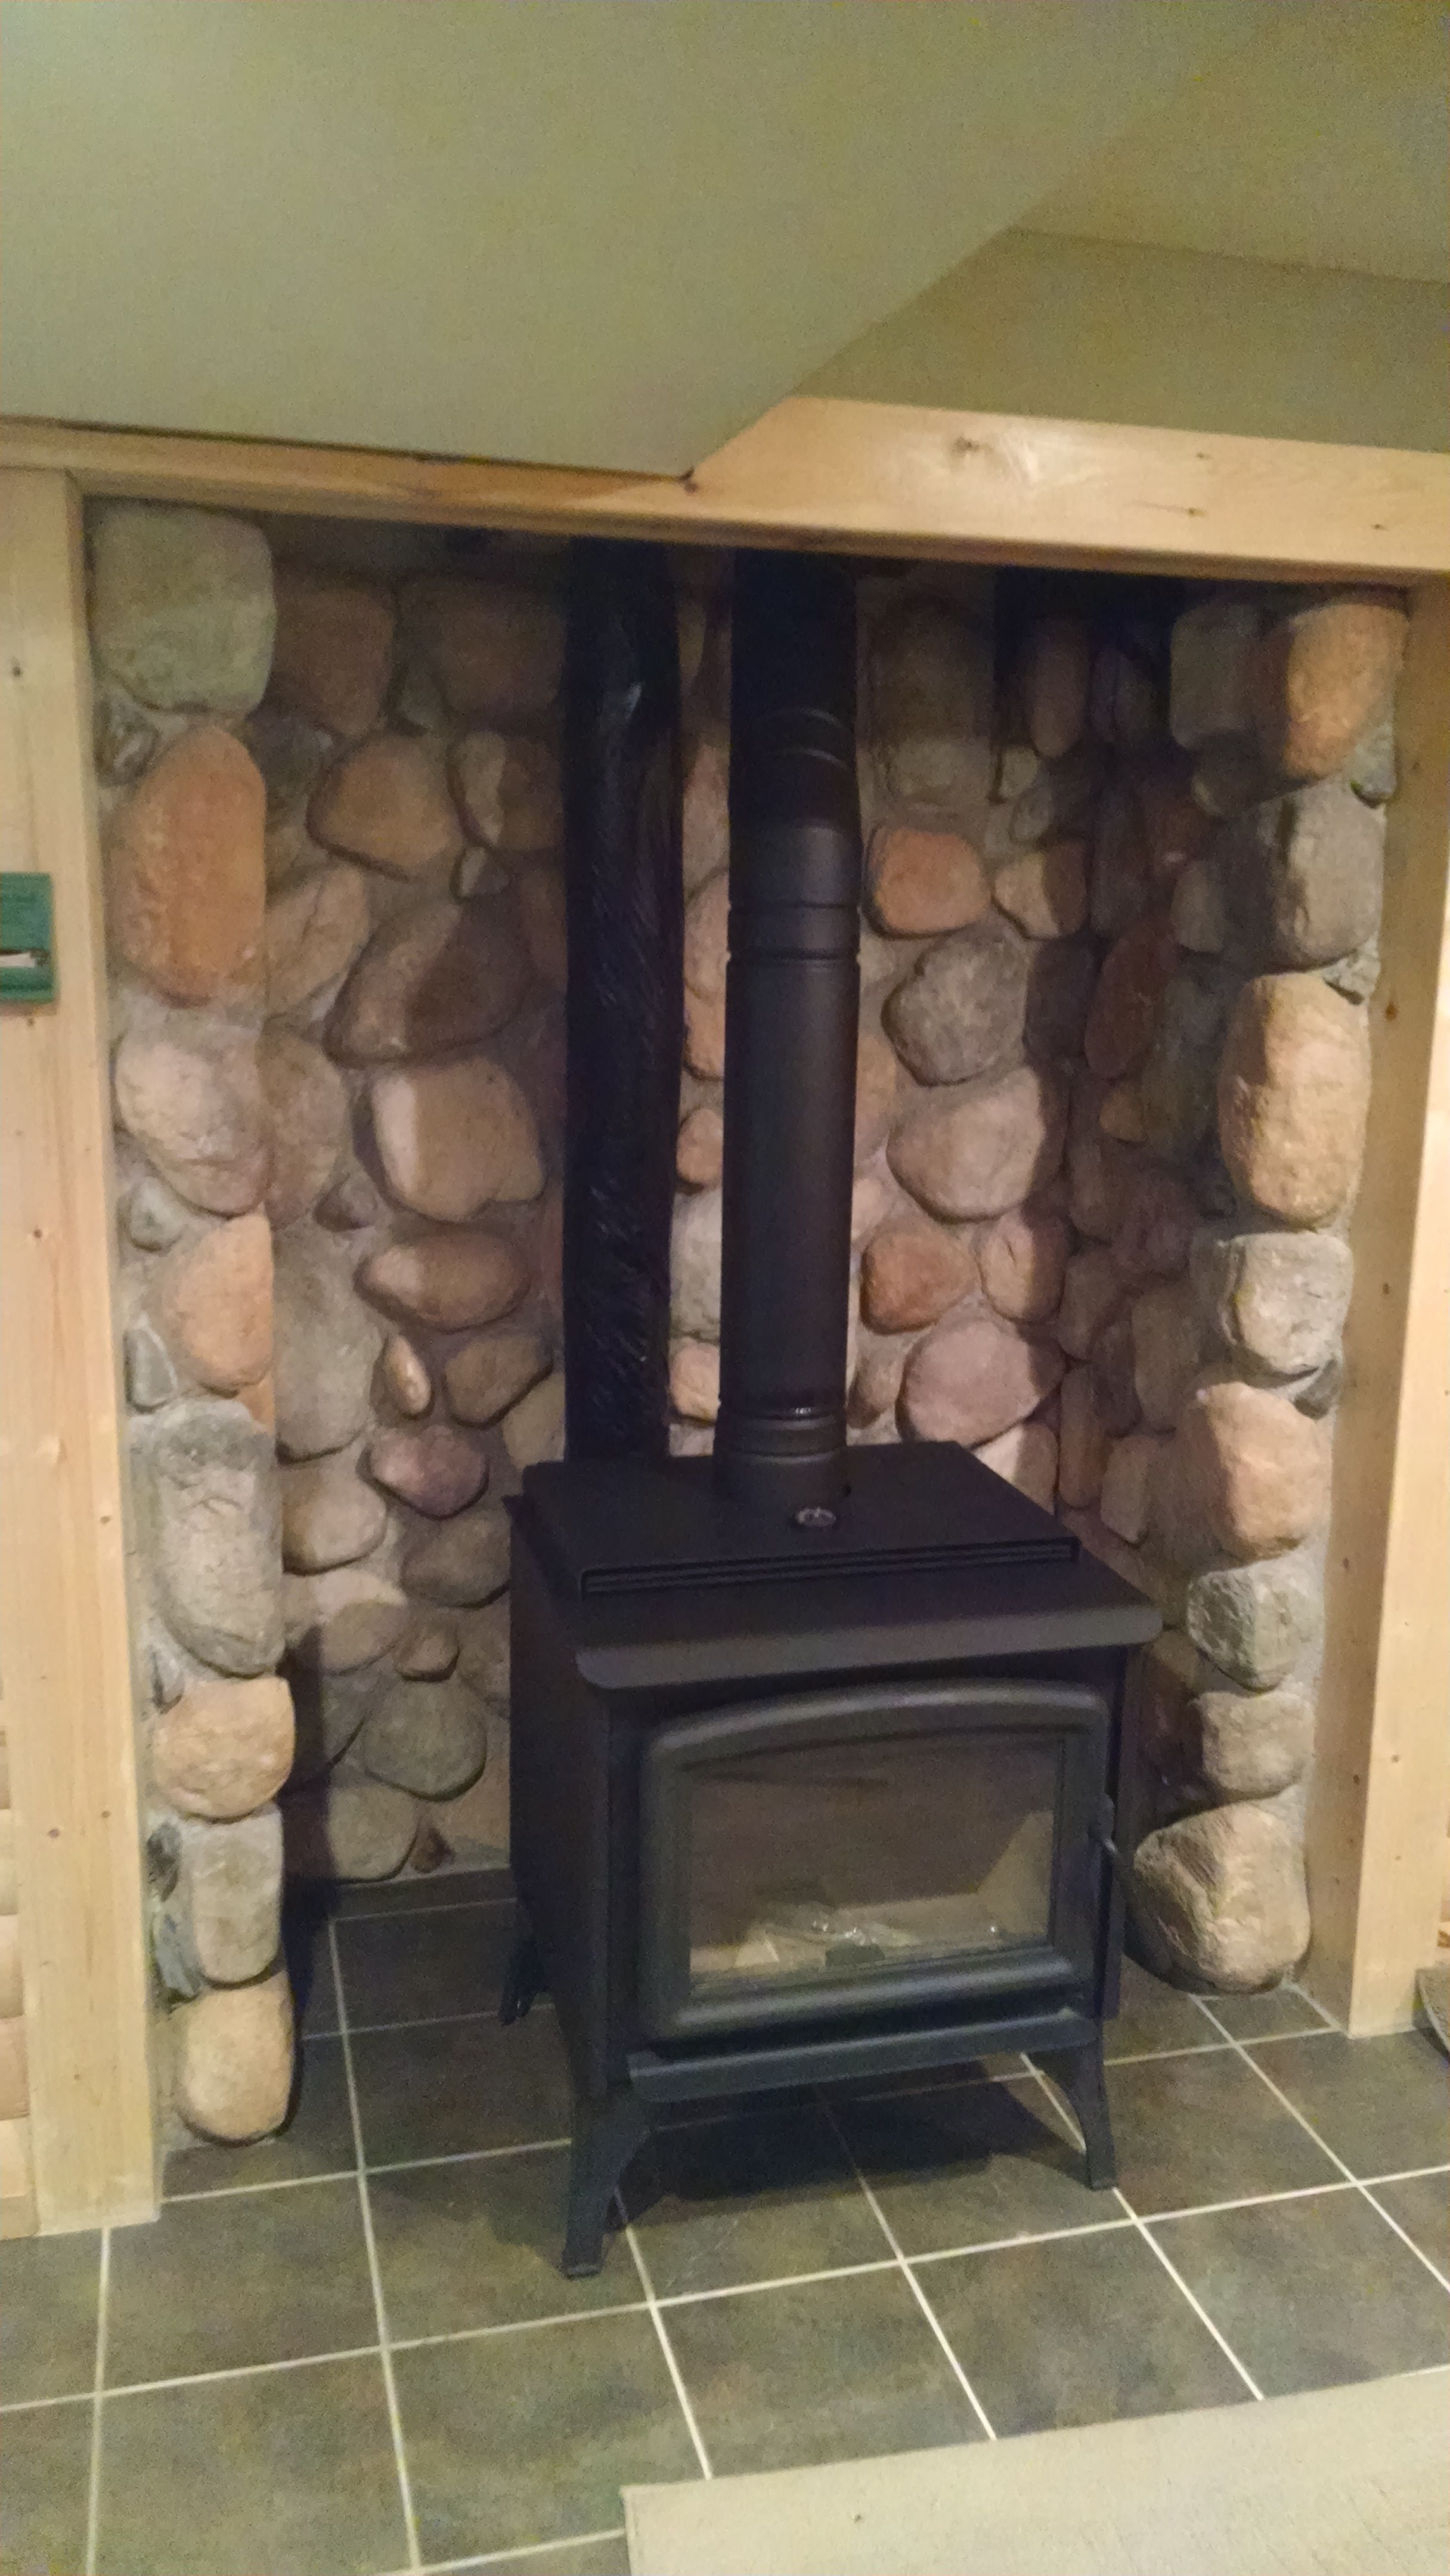 blaze king fireplace inserts. Blaze King catalytic Sirocco 30 1 wood stove  The stoves offer lower clearances than